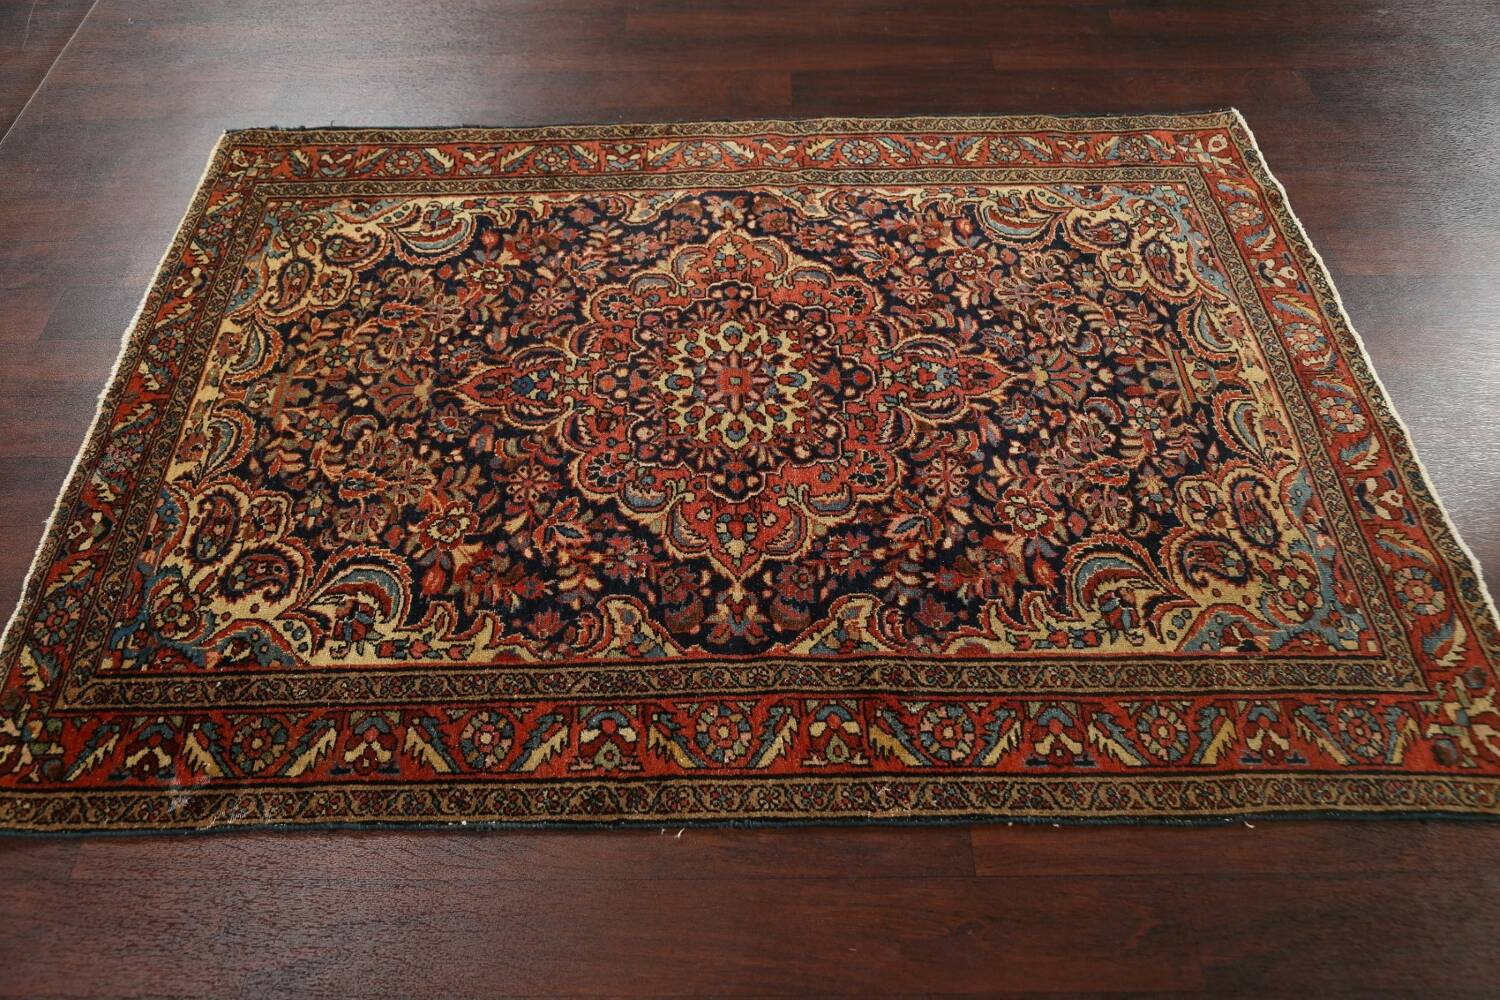 Antique Vegetable Dye Malayer Persian Area Rug 5x6 image 12